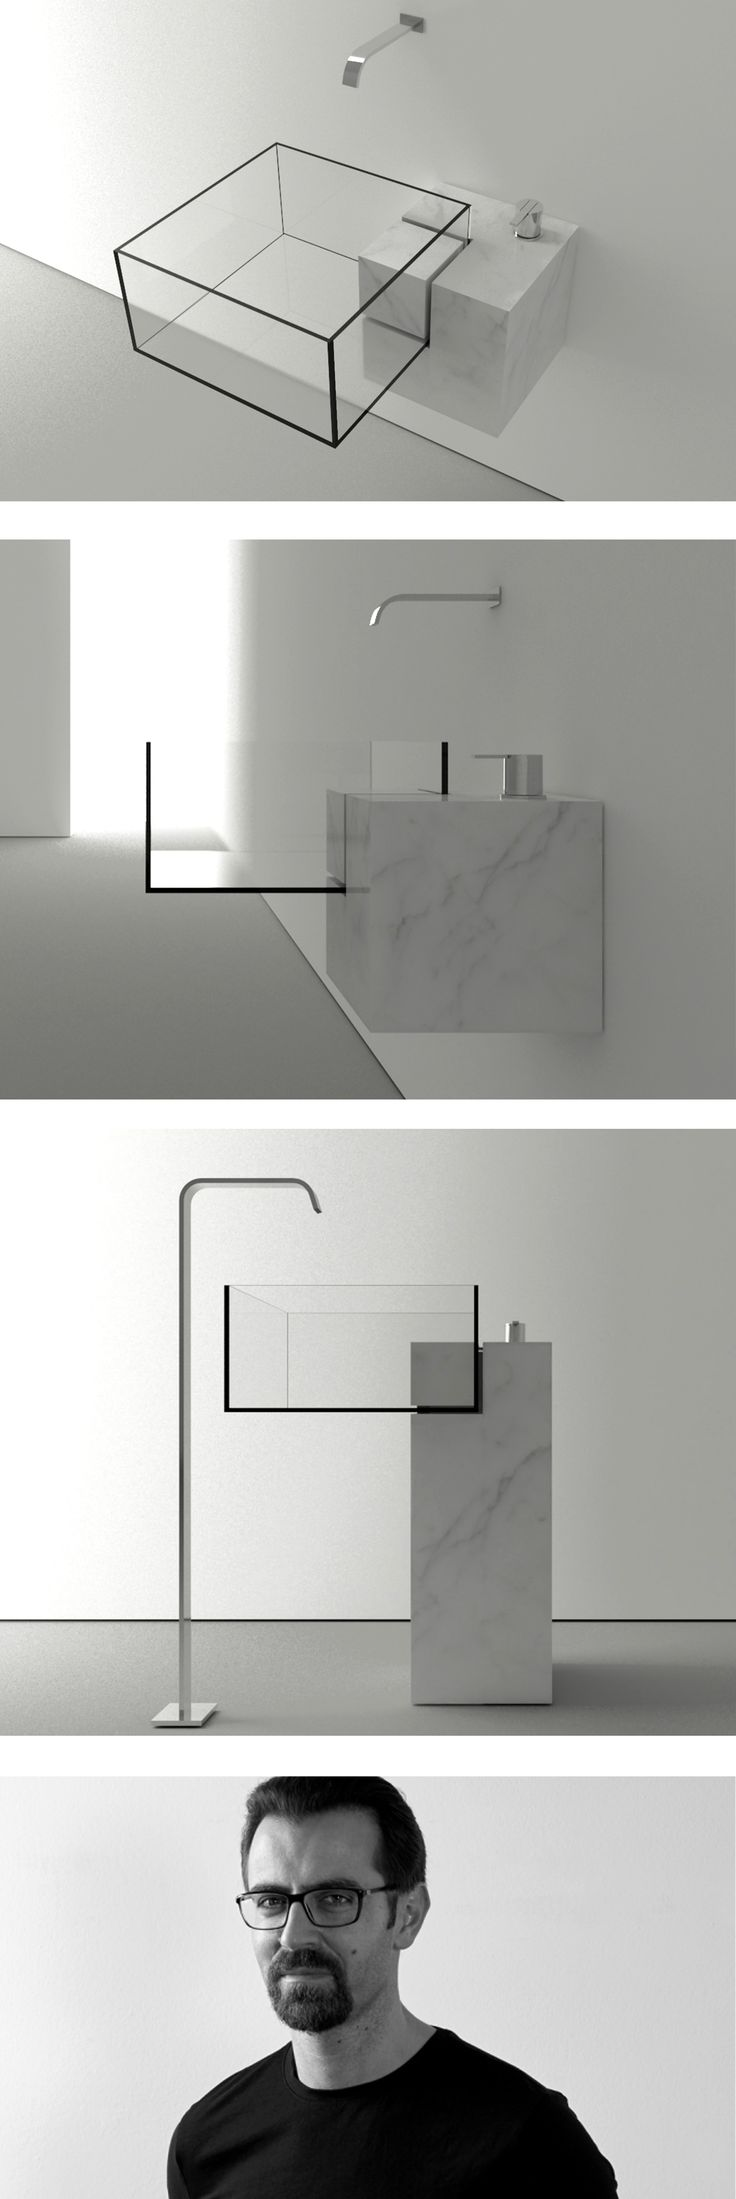 Milan-based architect #VictorVasilev designed KUB, a nearly invisible bathroom…